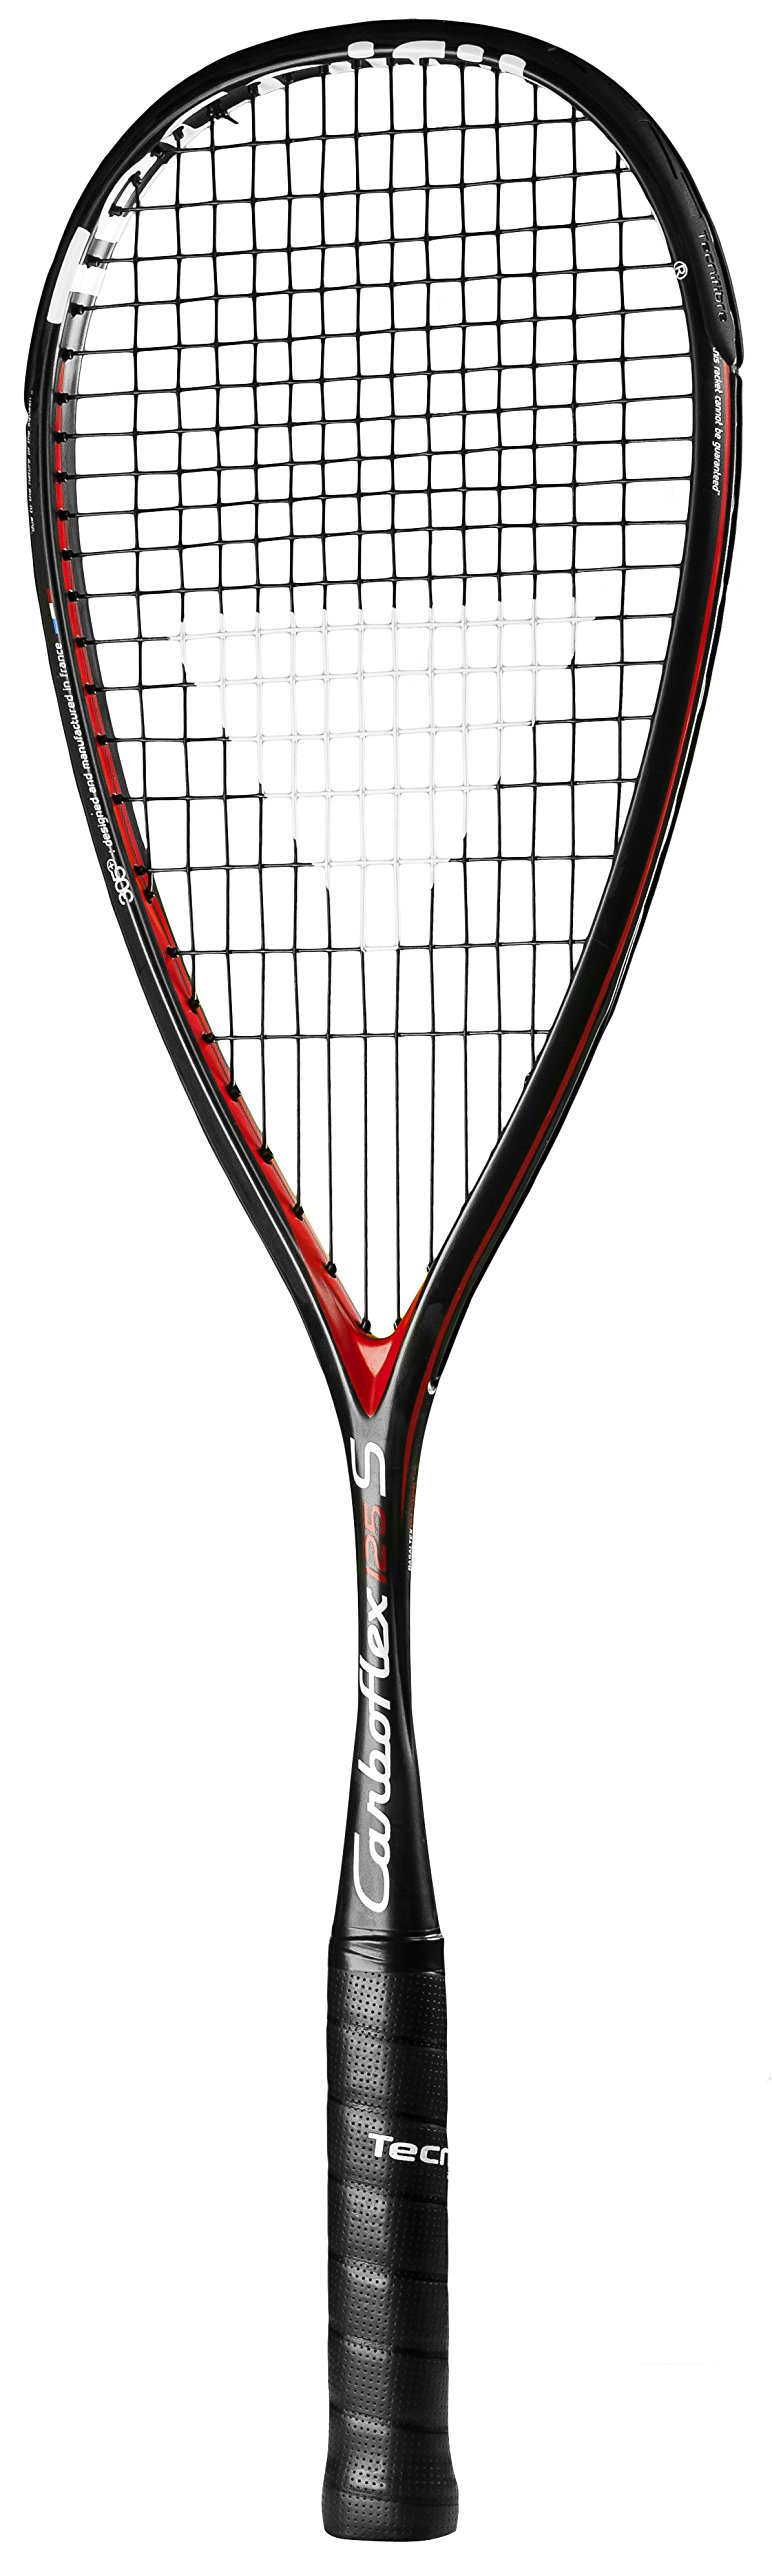 Tecnifibre Carboflex (S) Squash Racquet Series (125, 130, 135g Weights Available)